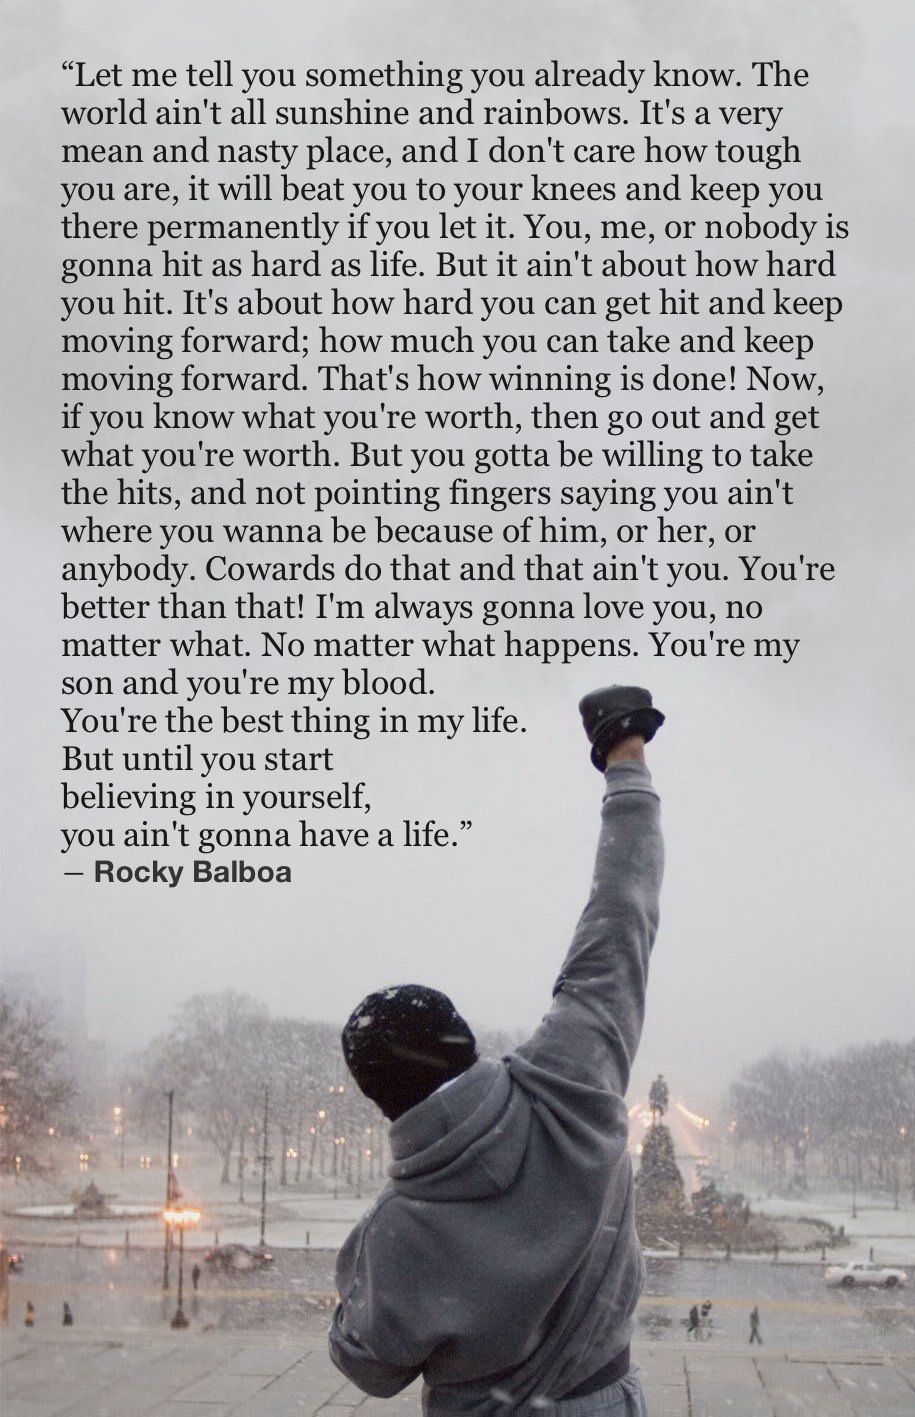 Rocky Quotes Wallpaper : rocky, quotes, wallpaper, Love💙, Rocky, Balboa, Quotes,, Inspiational, Quotes